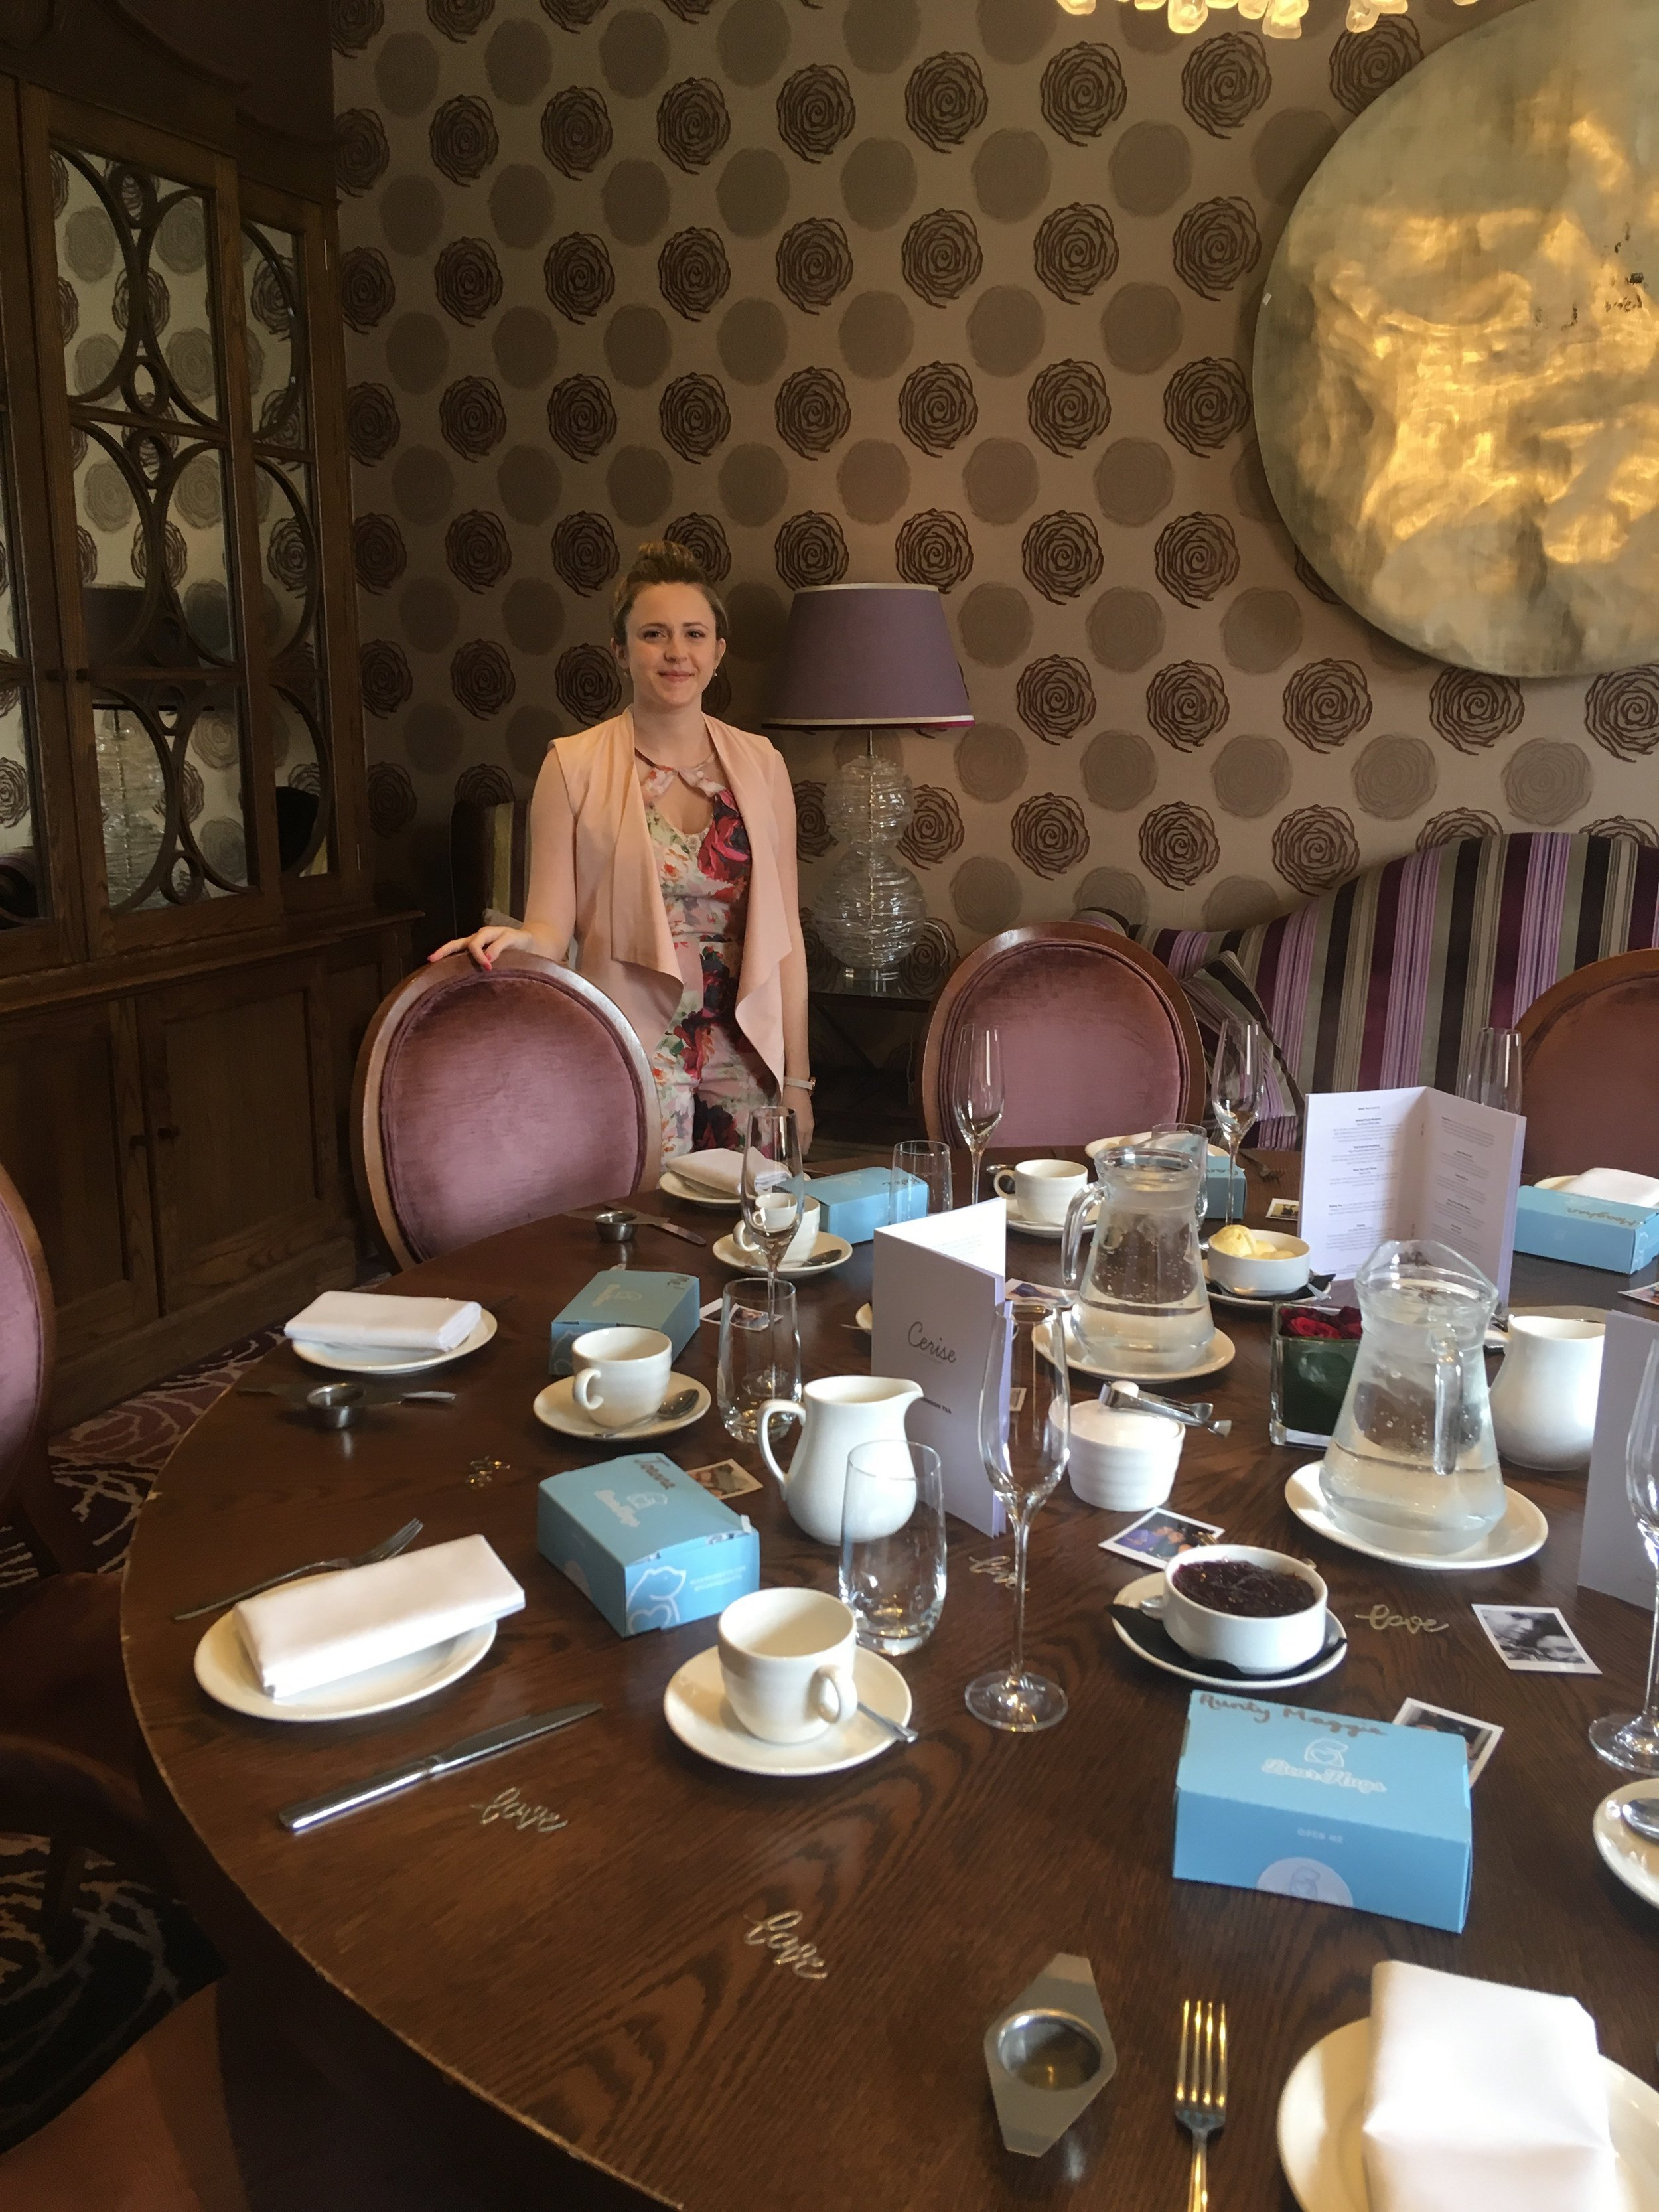 laura at afternoon tea hen do with bearhugs table party favours.JPG